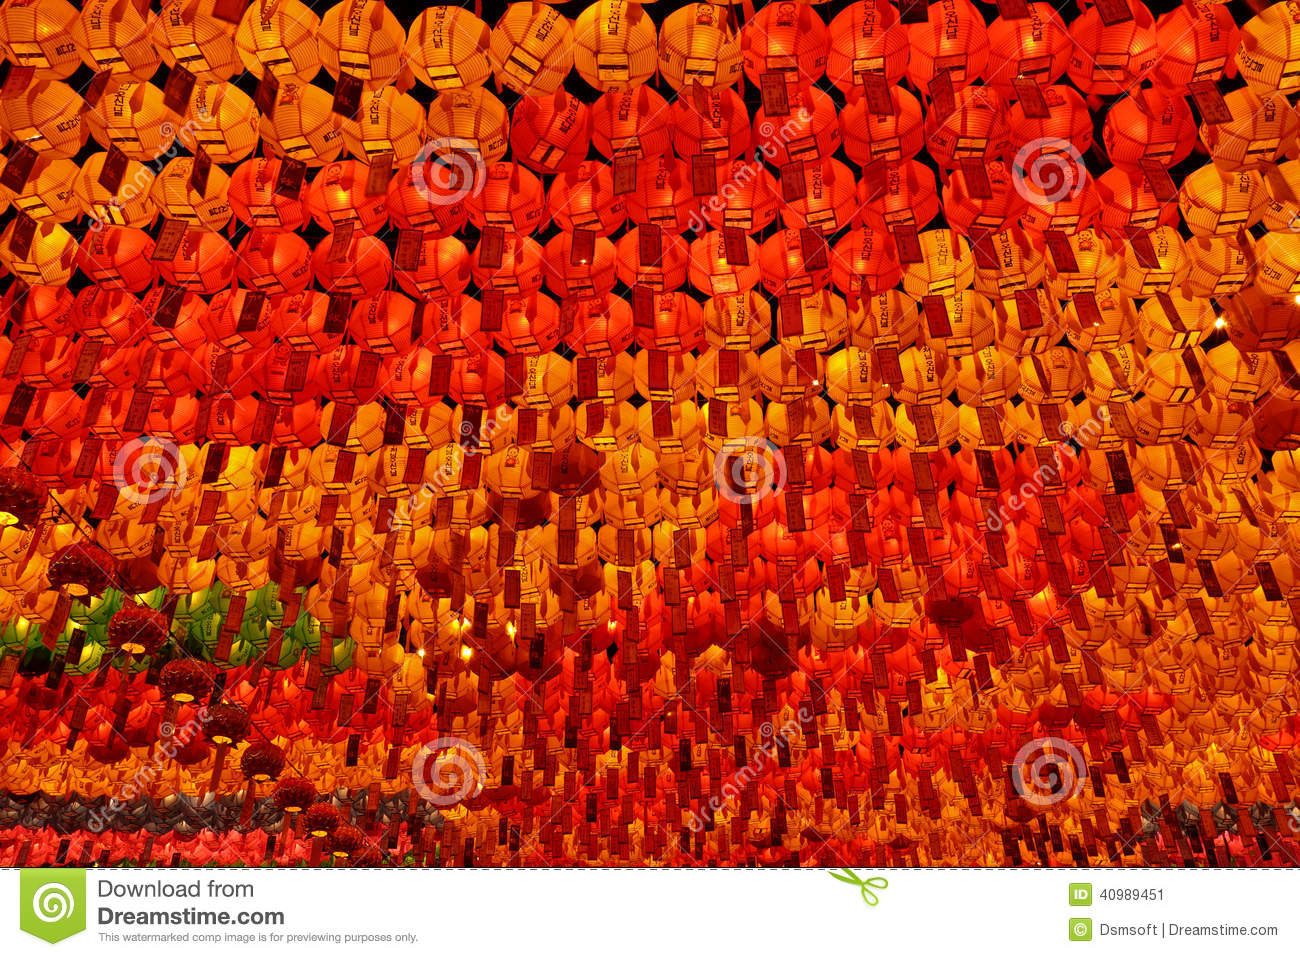 Many red, yellow and green glowing lanterns